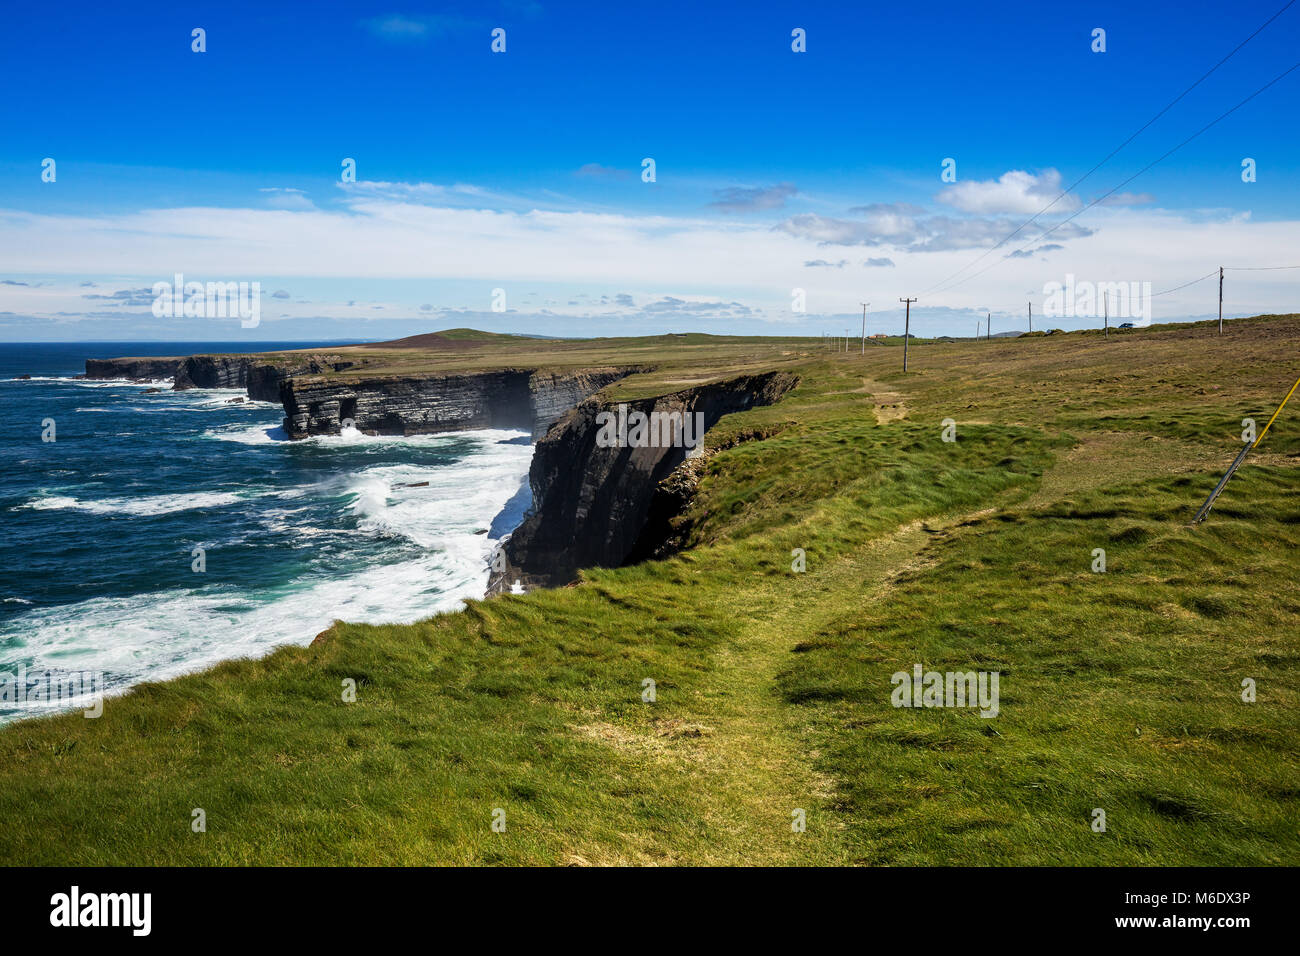 Cliffs of Loop Head, Kilbaha, Co. Clare, Ireland. Unique geological rock formations has formed over millions of - Stock Image